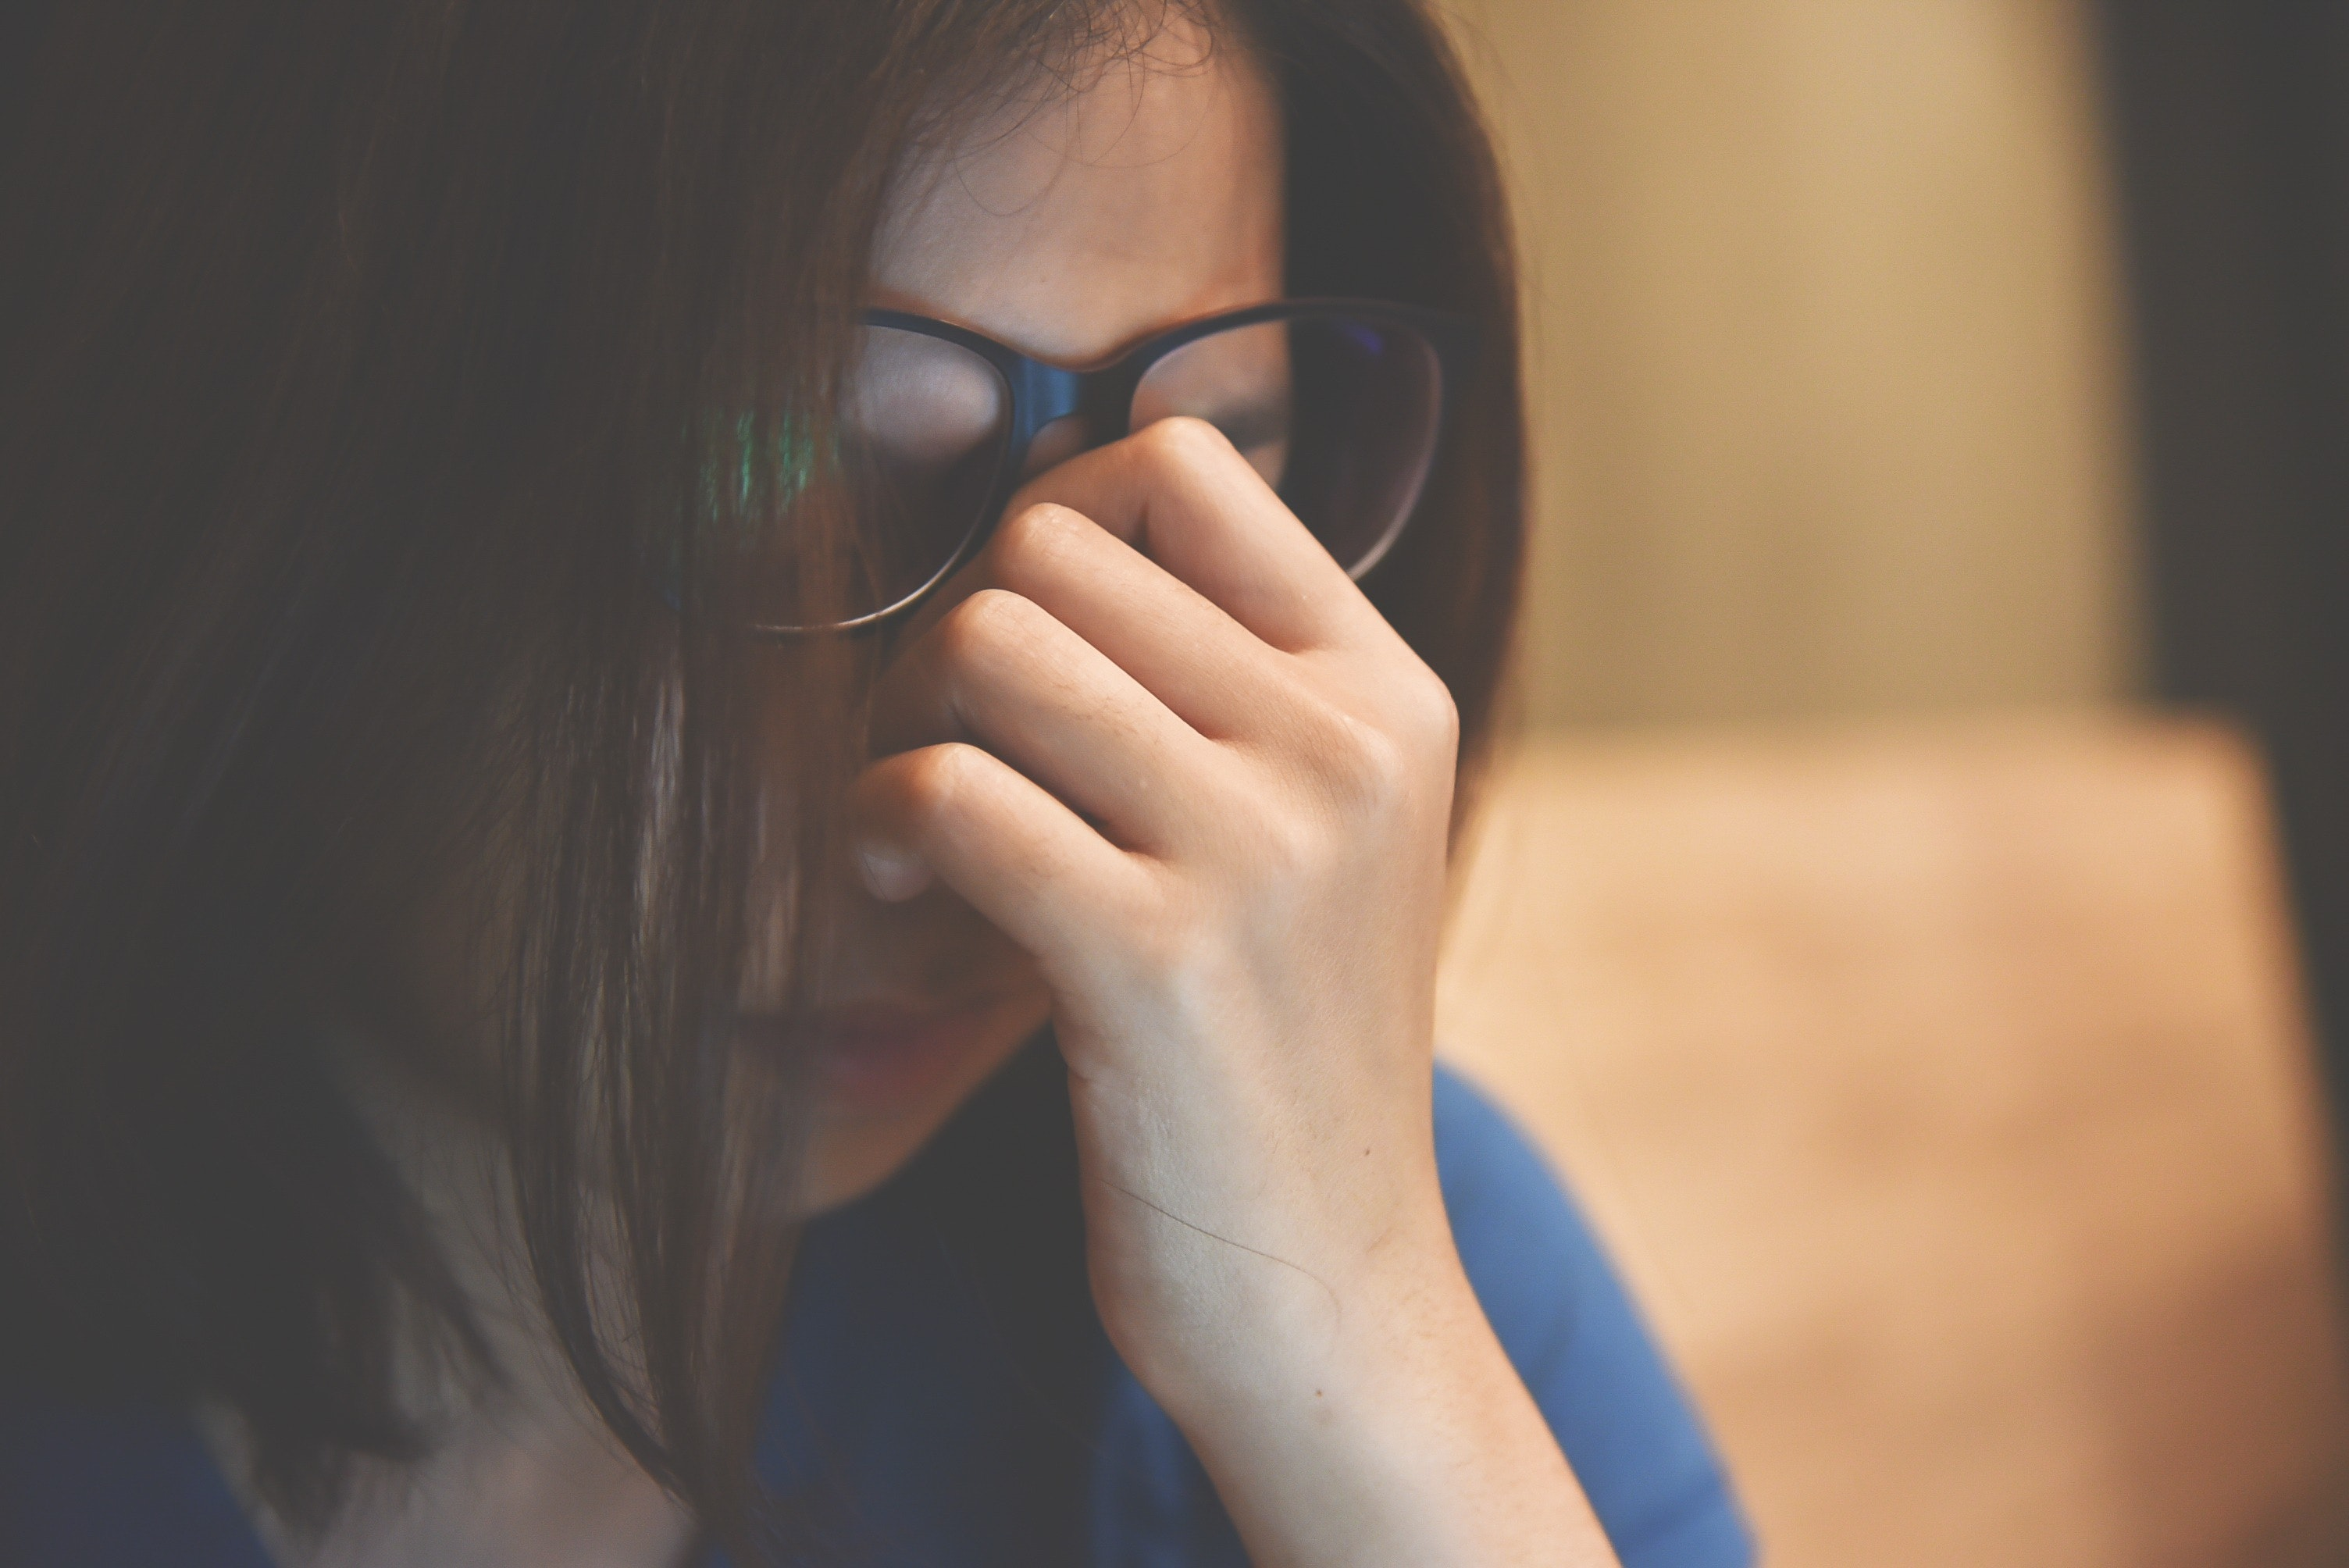 An image depicting a person suffering from difficulty concentrating symptoms